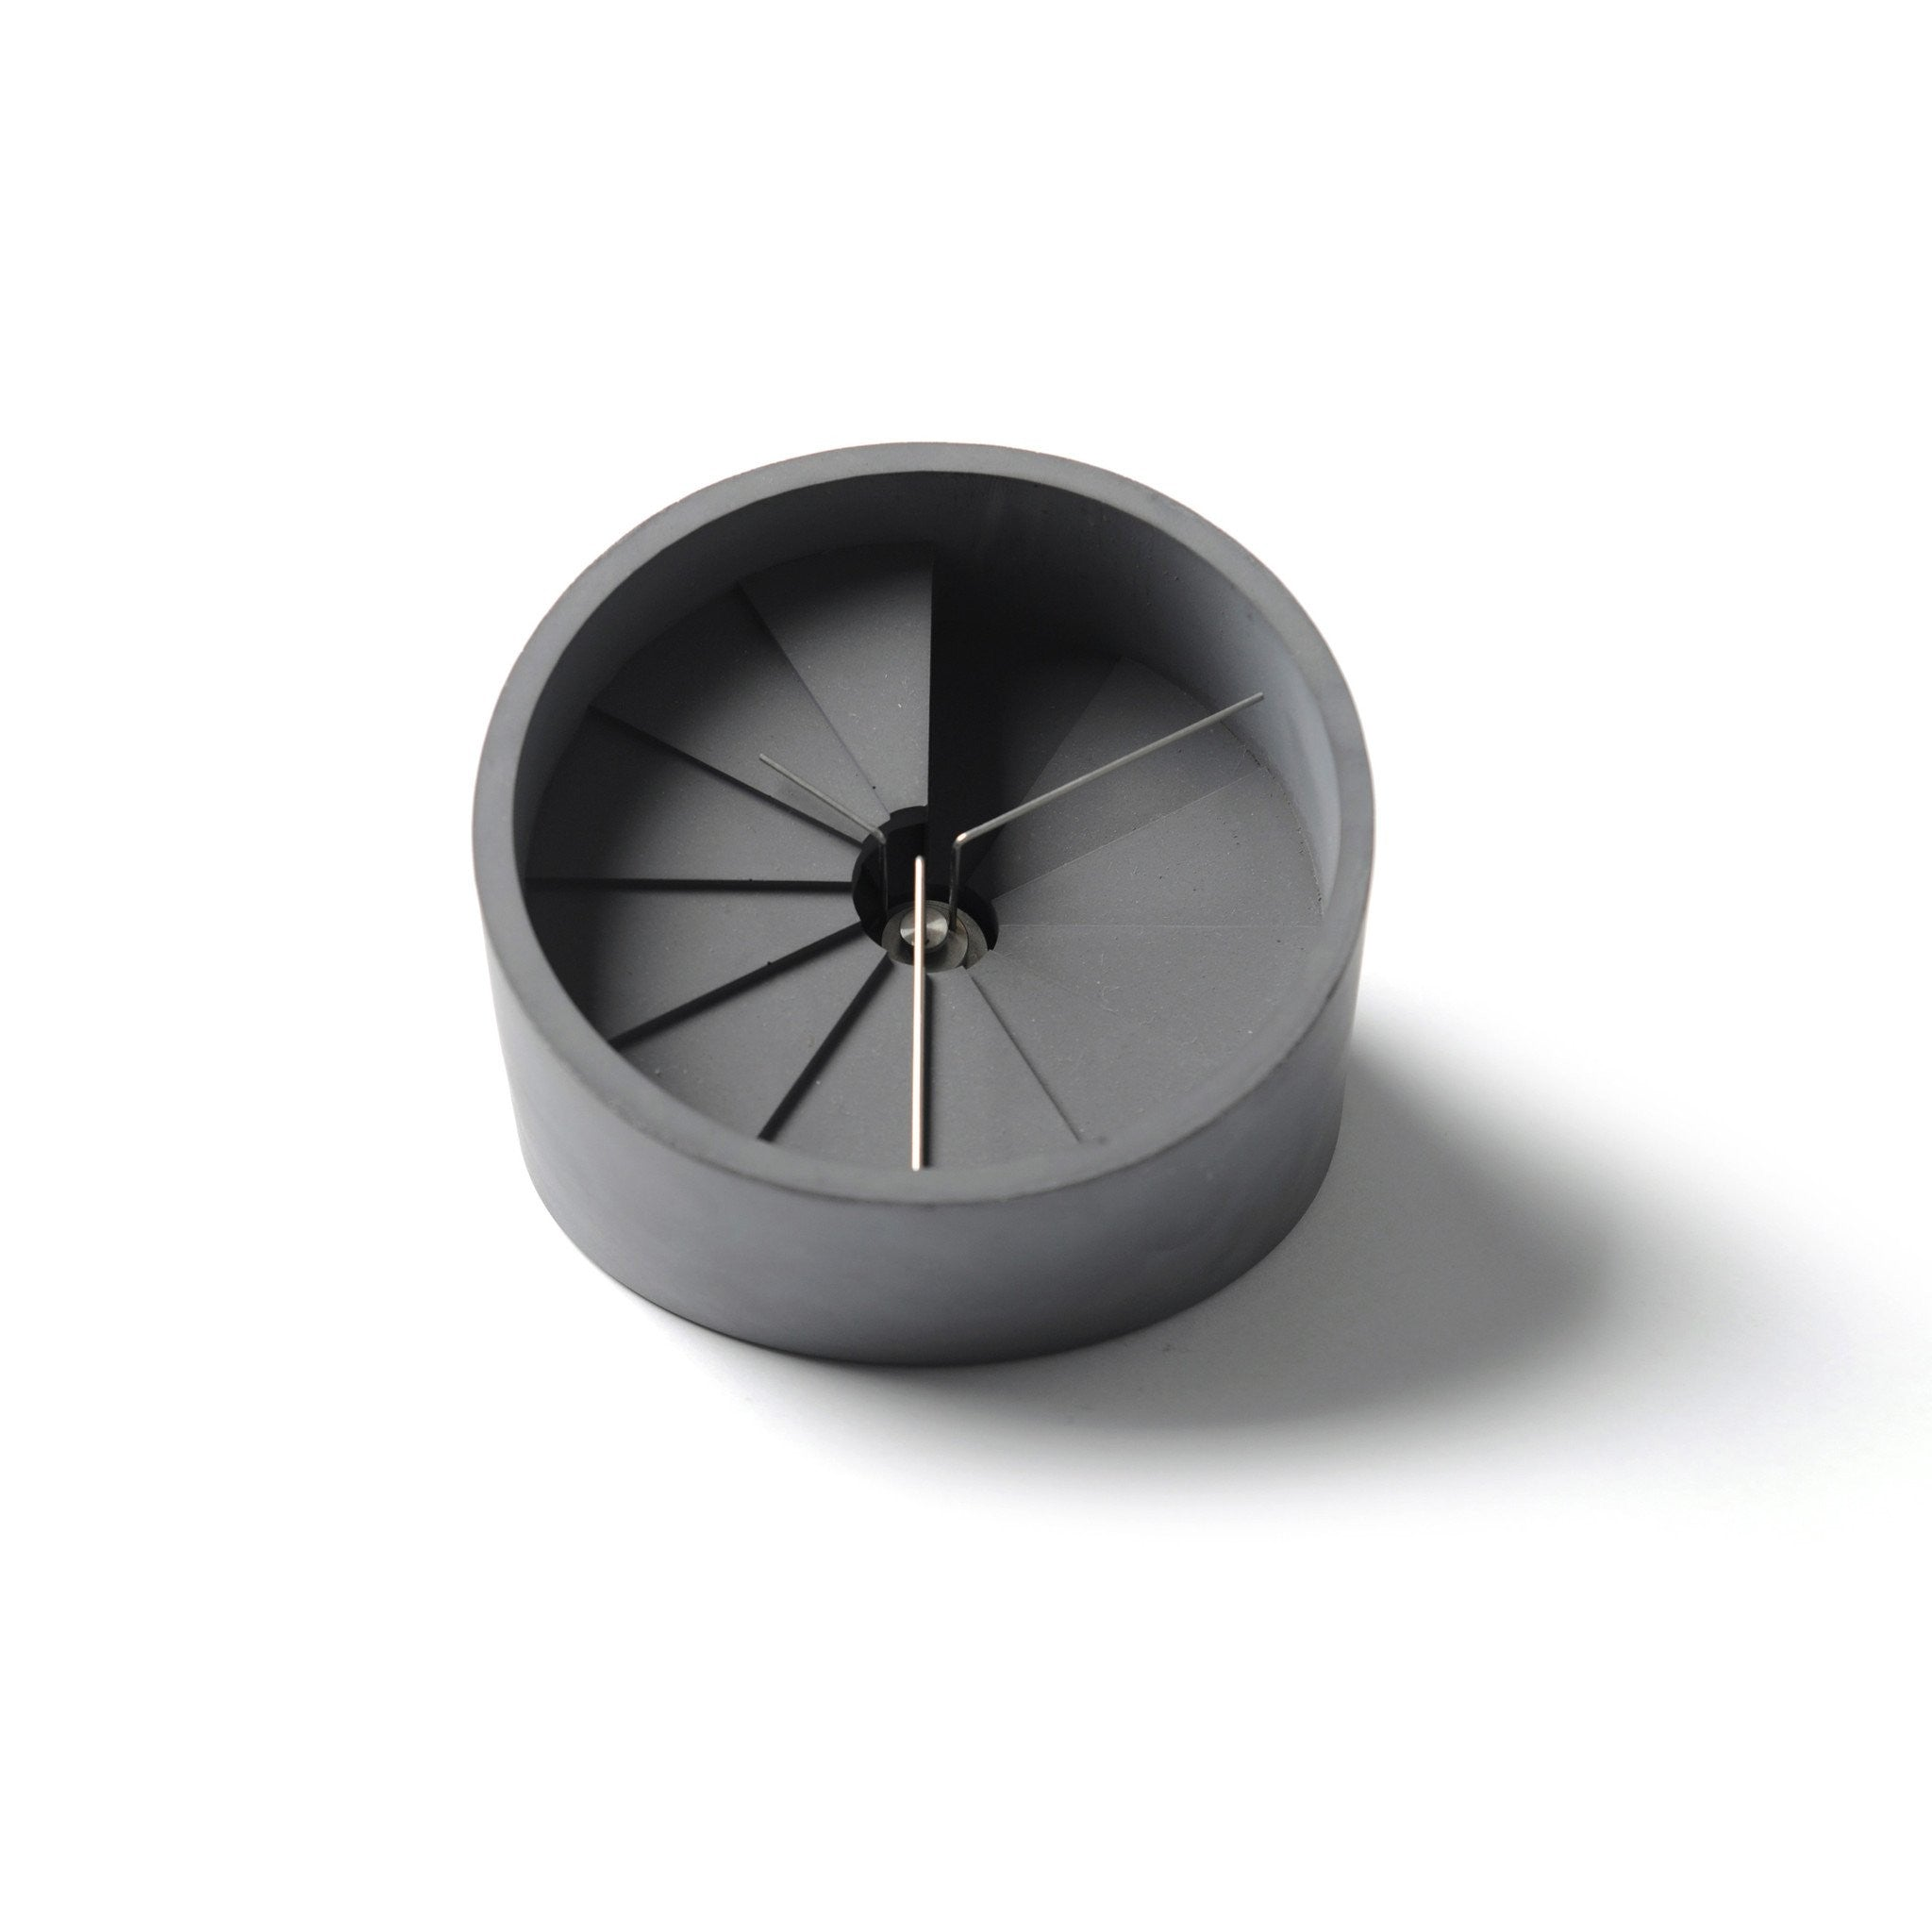 4th Dimension Table Clock by IntoConcrete Inc on OOSTOR.com